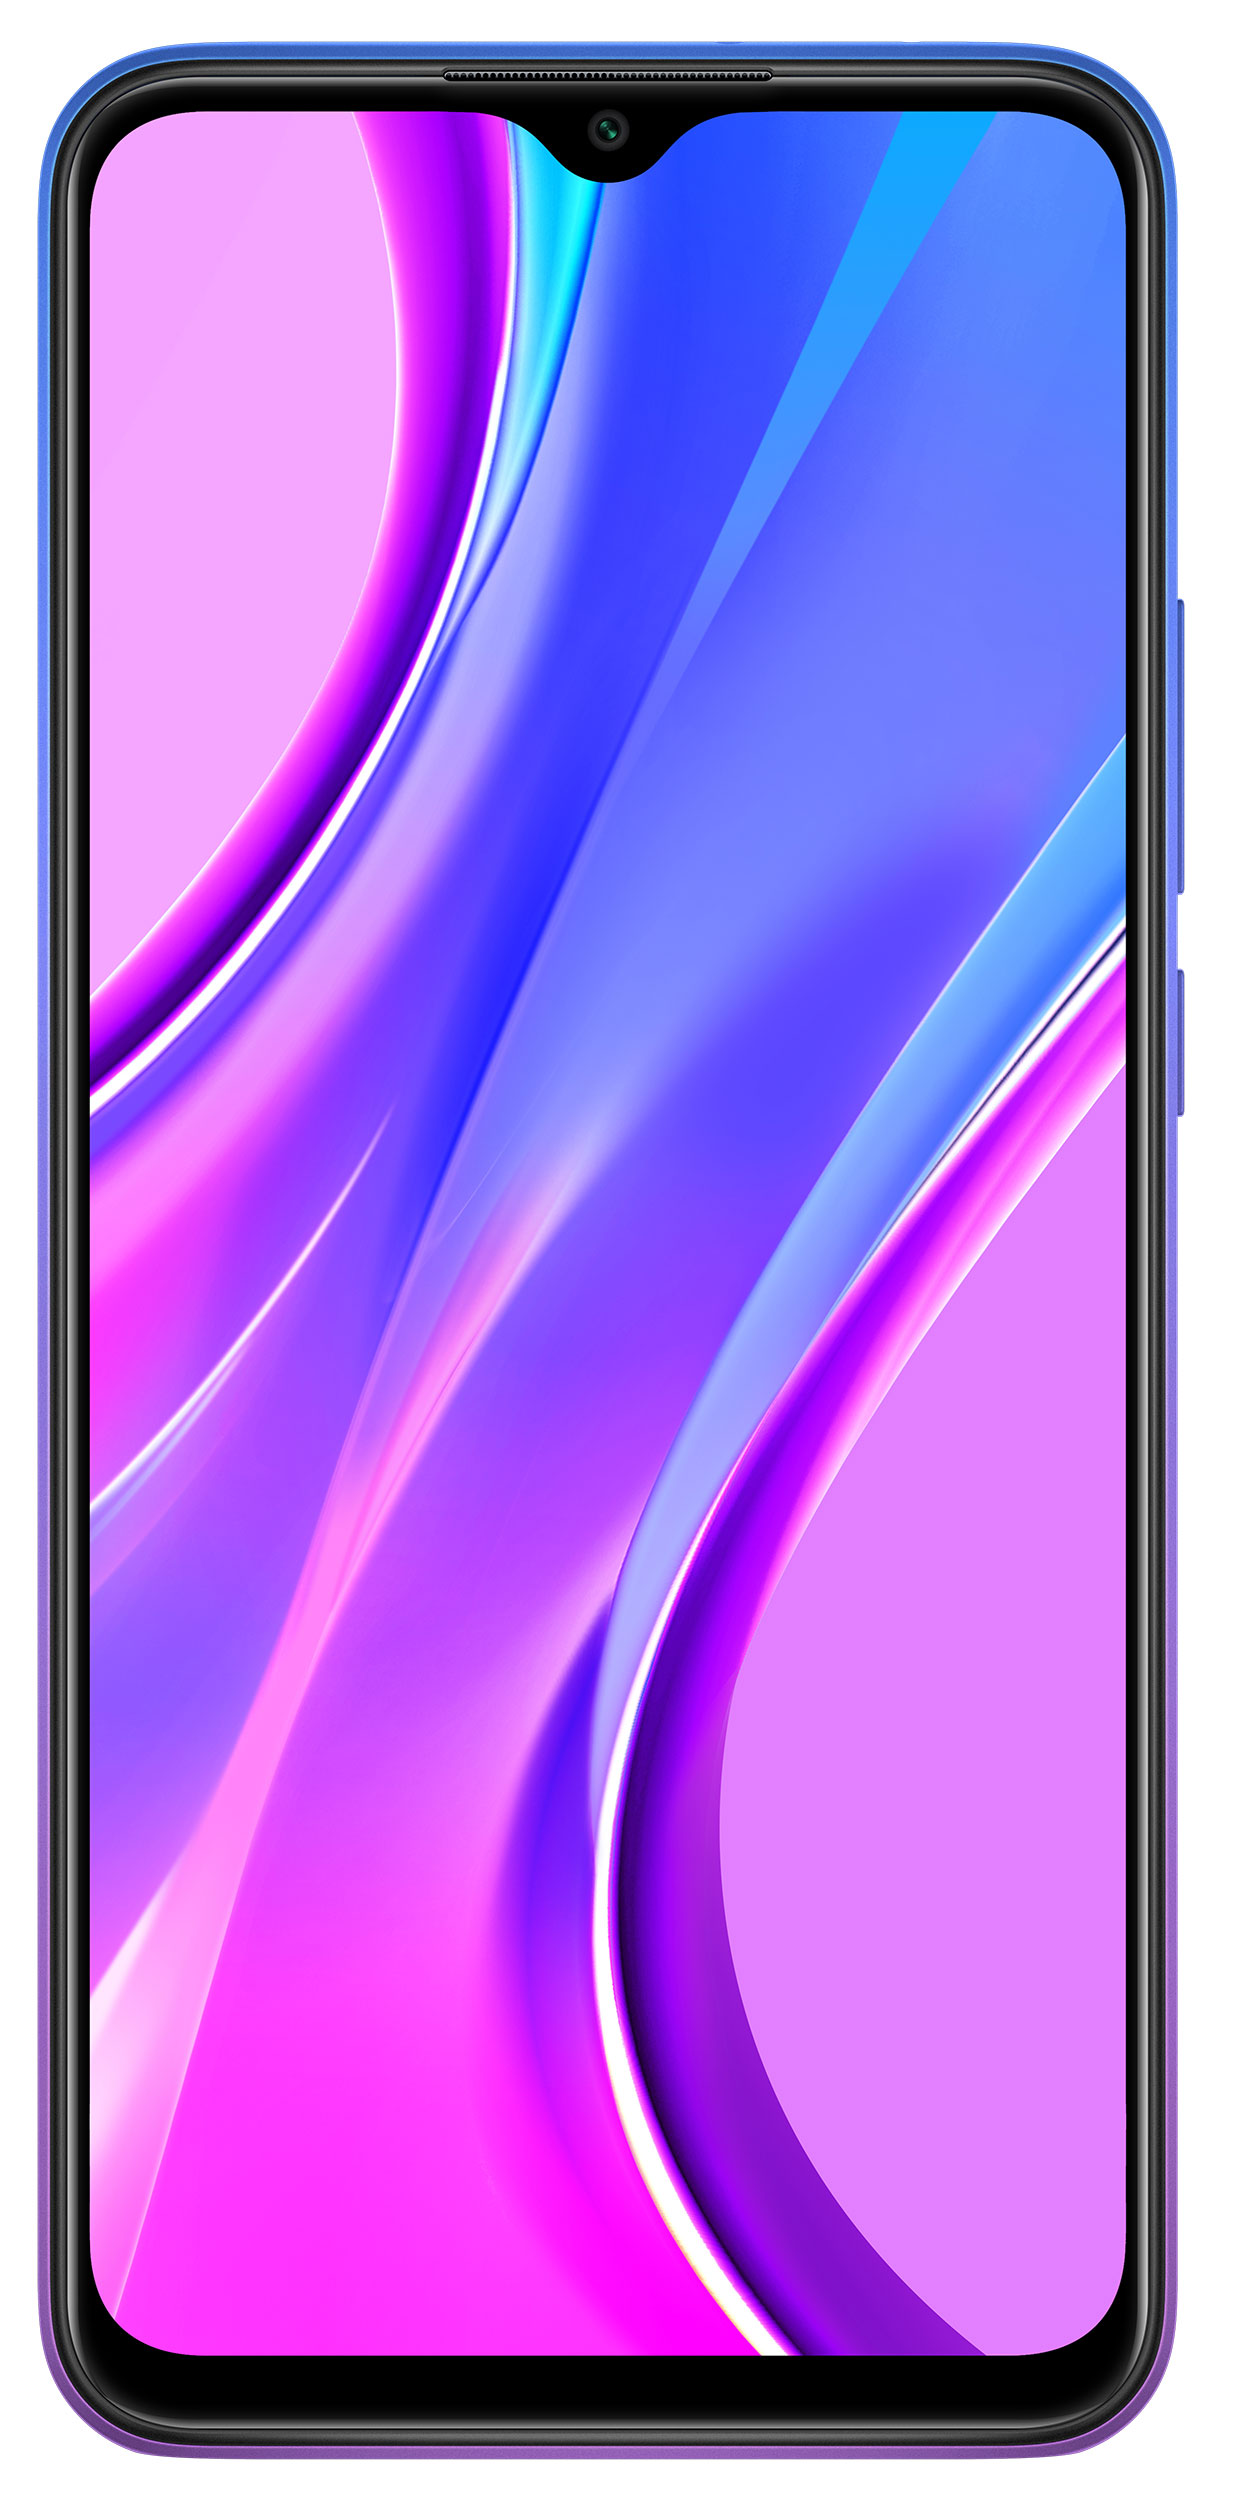 Redmi 9 okostelefon (Global) - 4+64GB, Naplemente lila